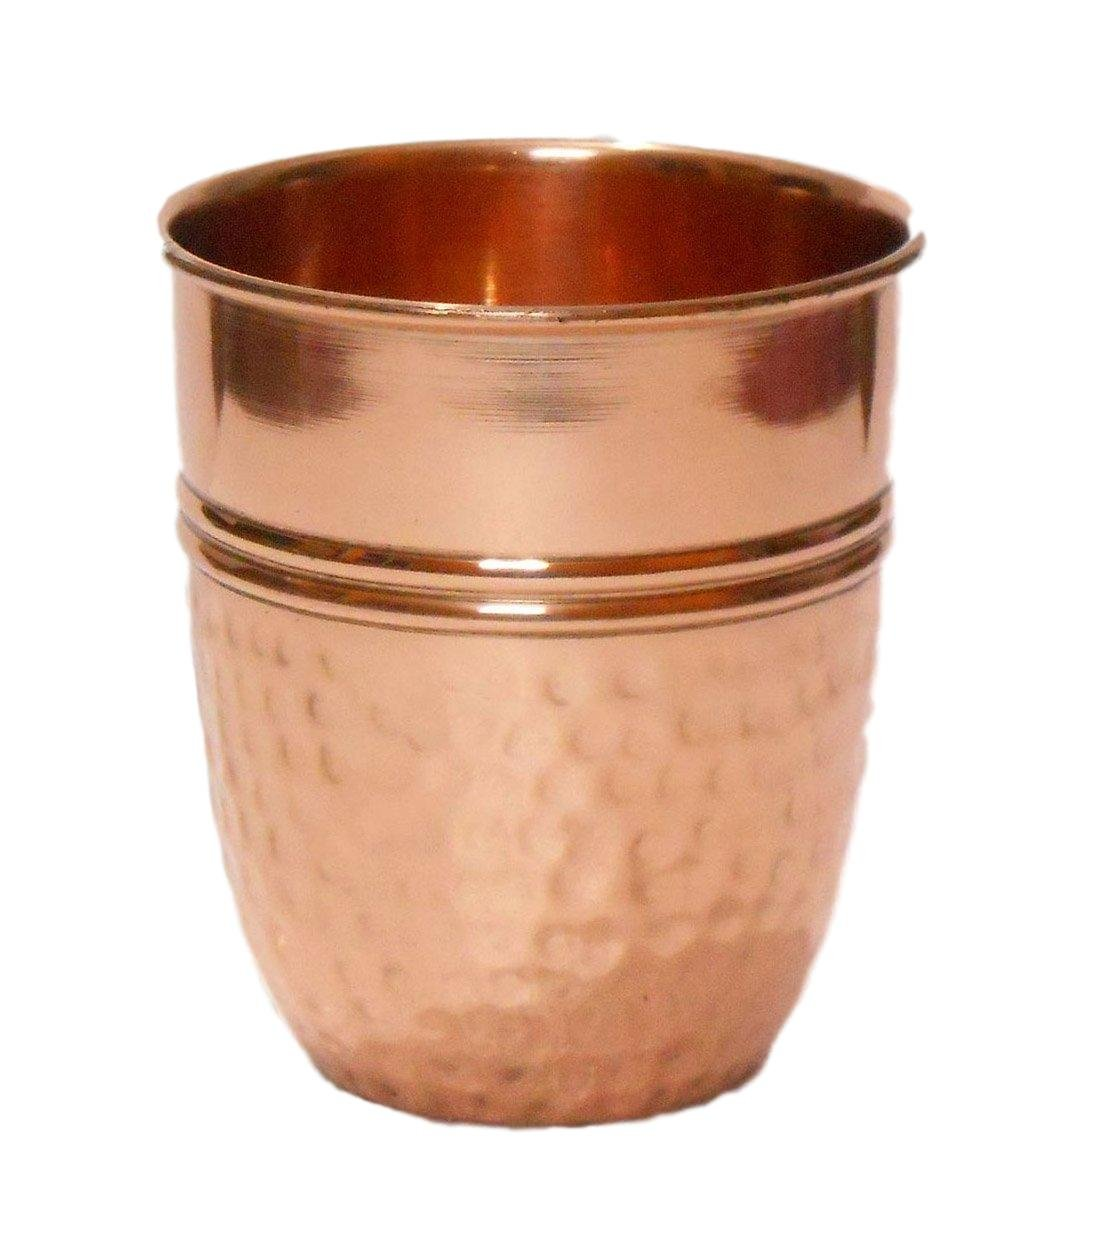 Premium Quality Hammered Copper Tumbler - 100% Pure Hammered Copper Tumbler for Moscow Mules Alchemade 2024